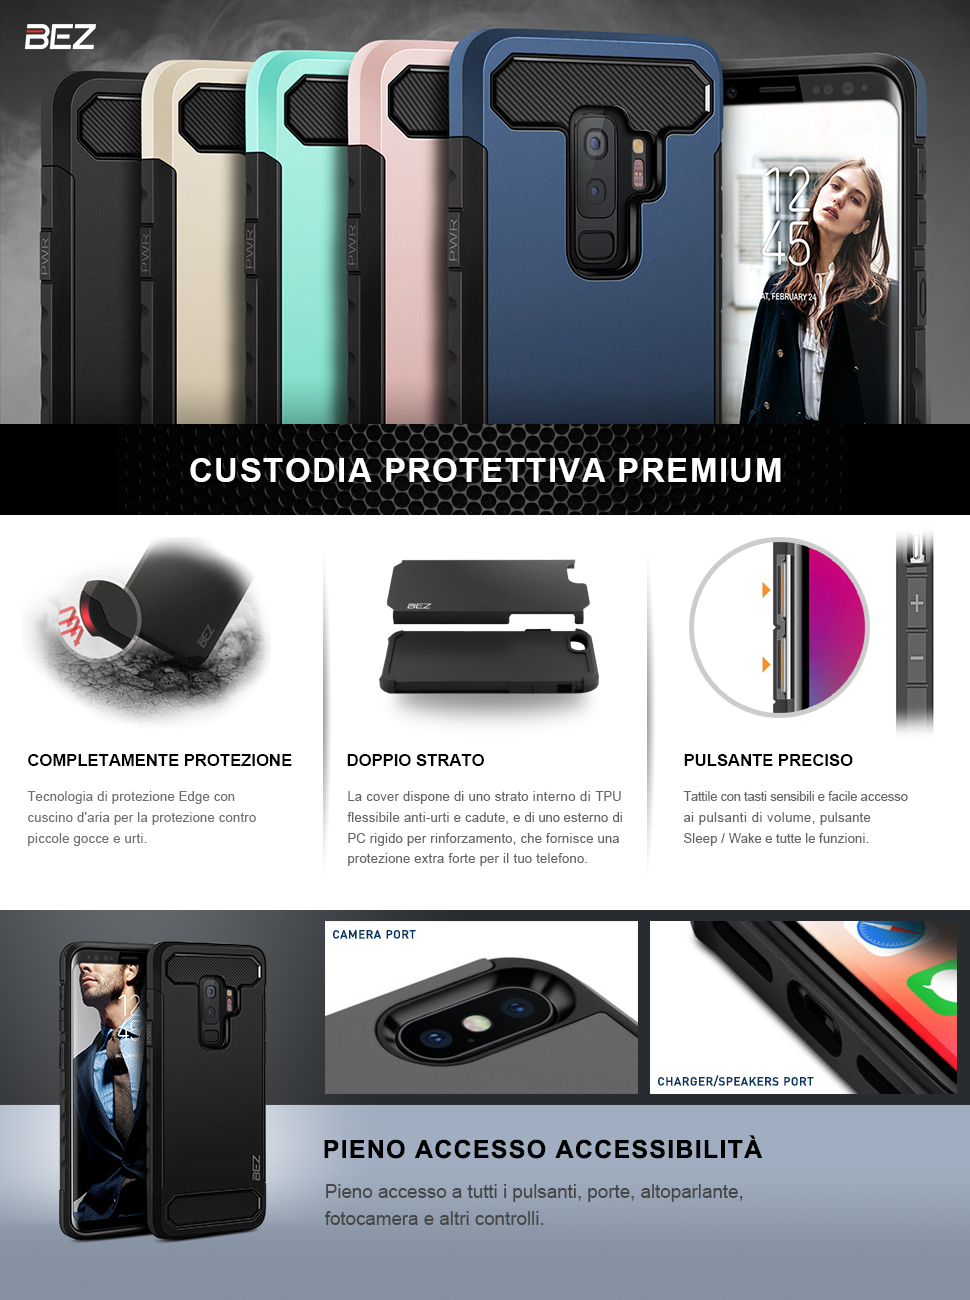 cover samsung s9 plus custodia rigida protettiva by bez